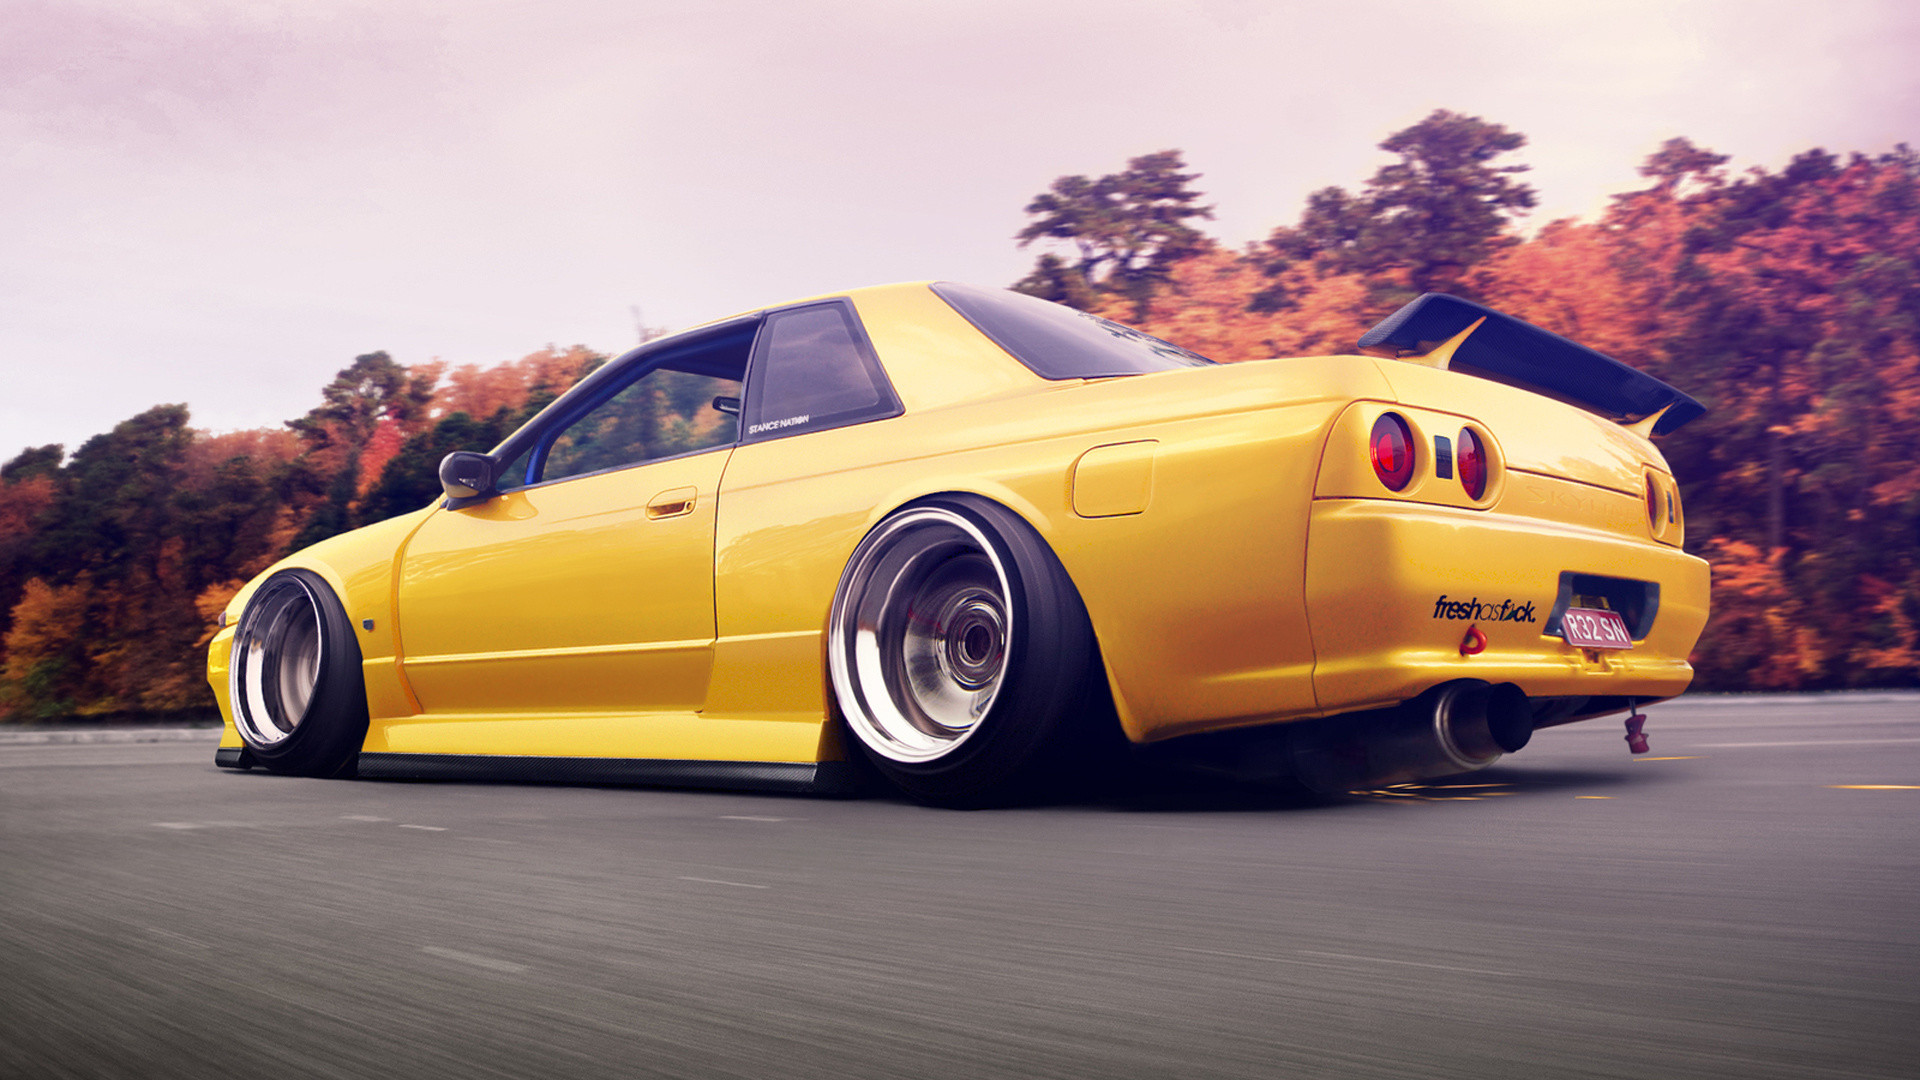 Nissan-R32-Skyline-Yellow.jpg (1920×1080)